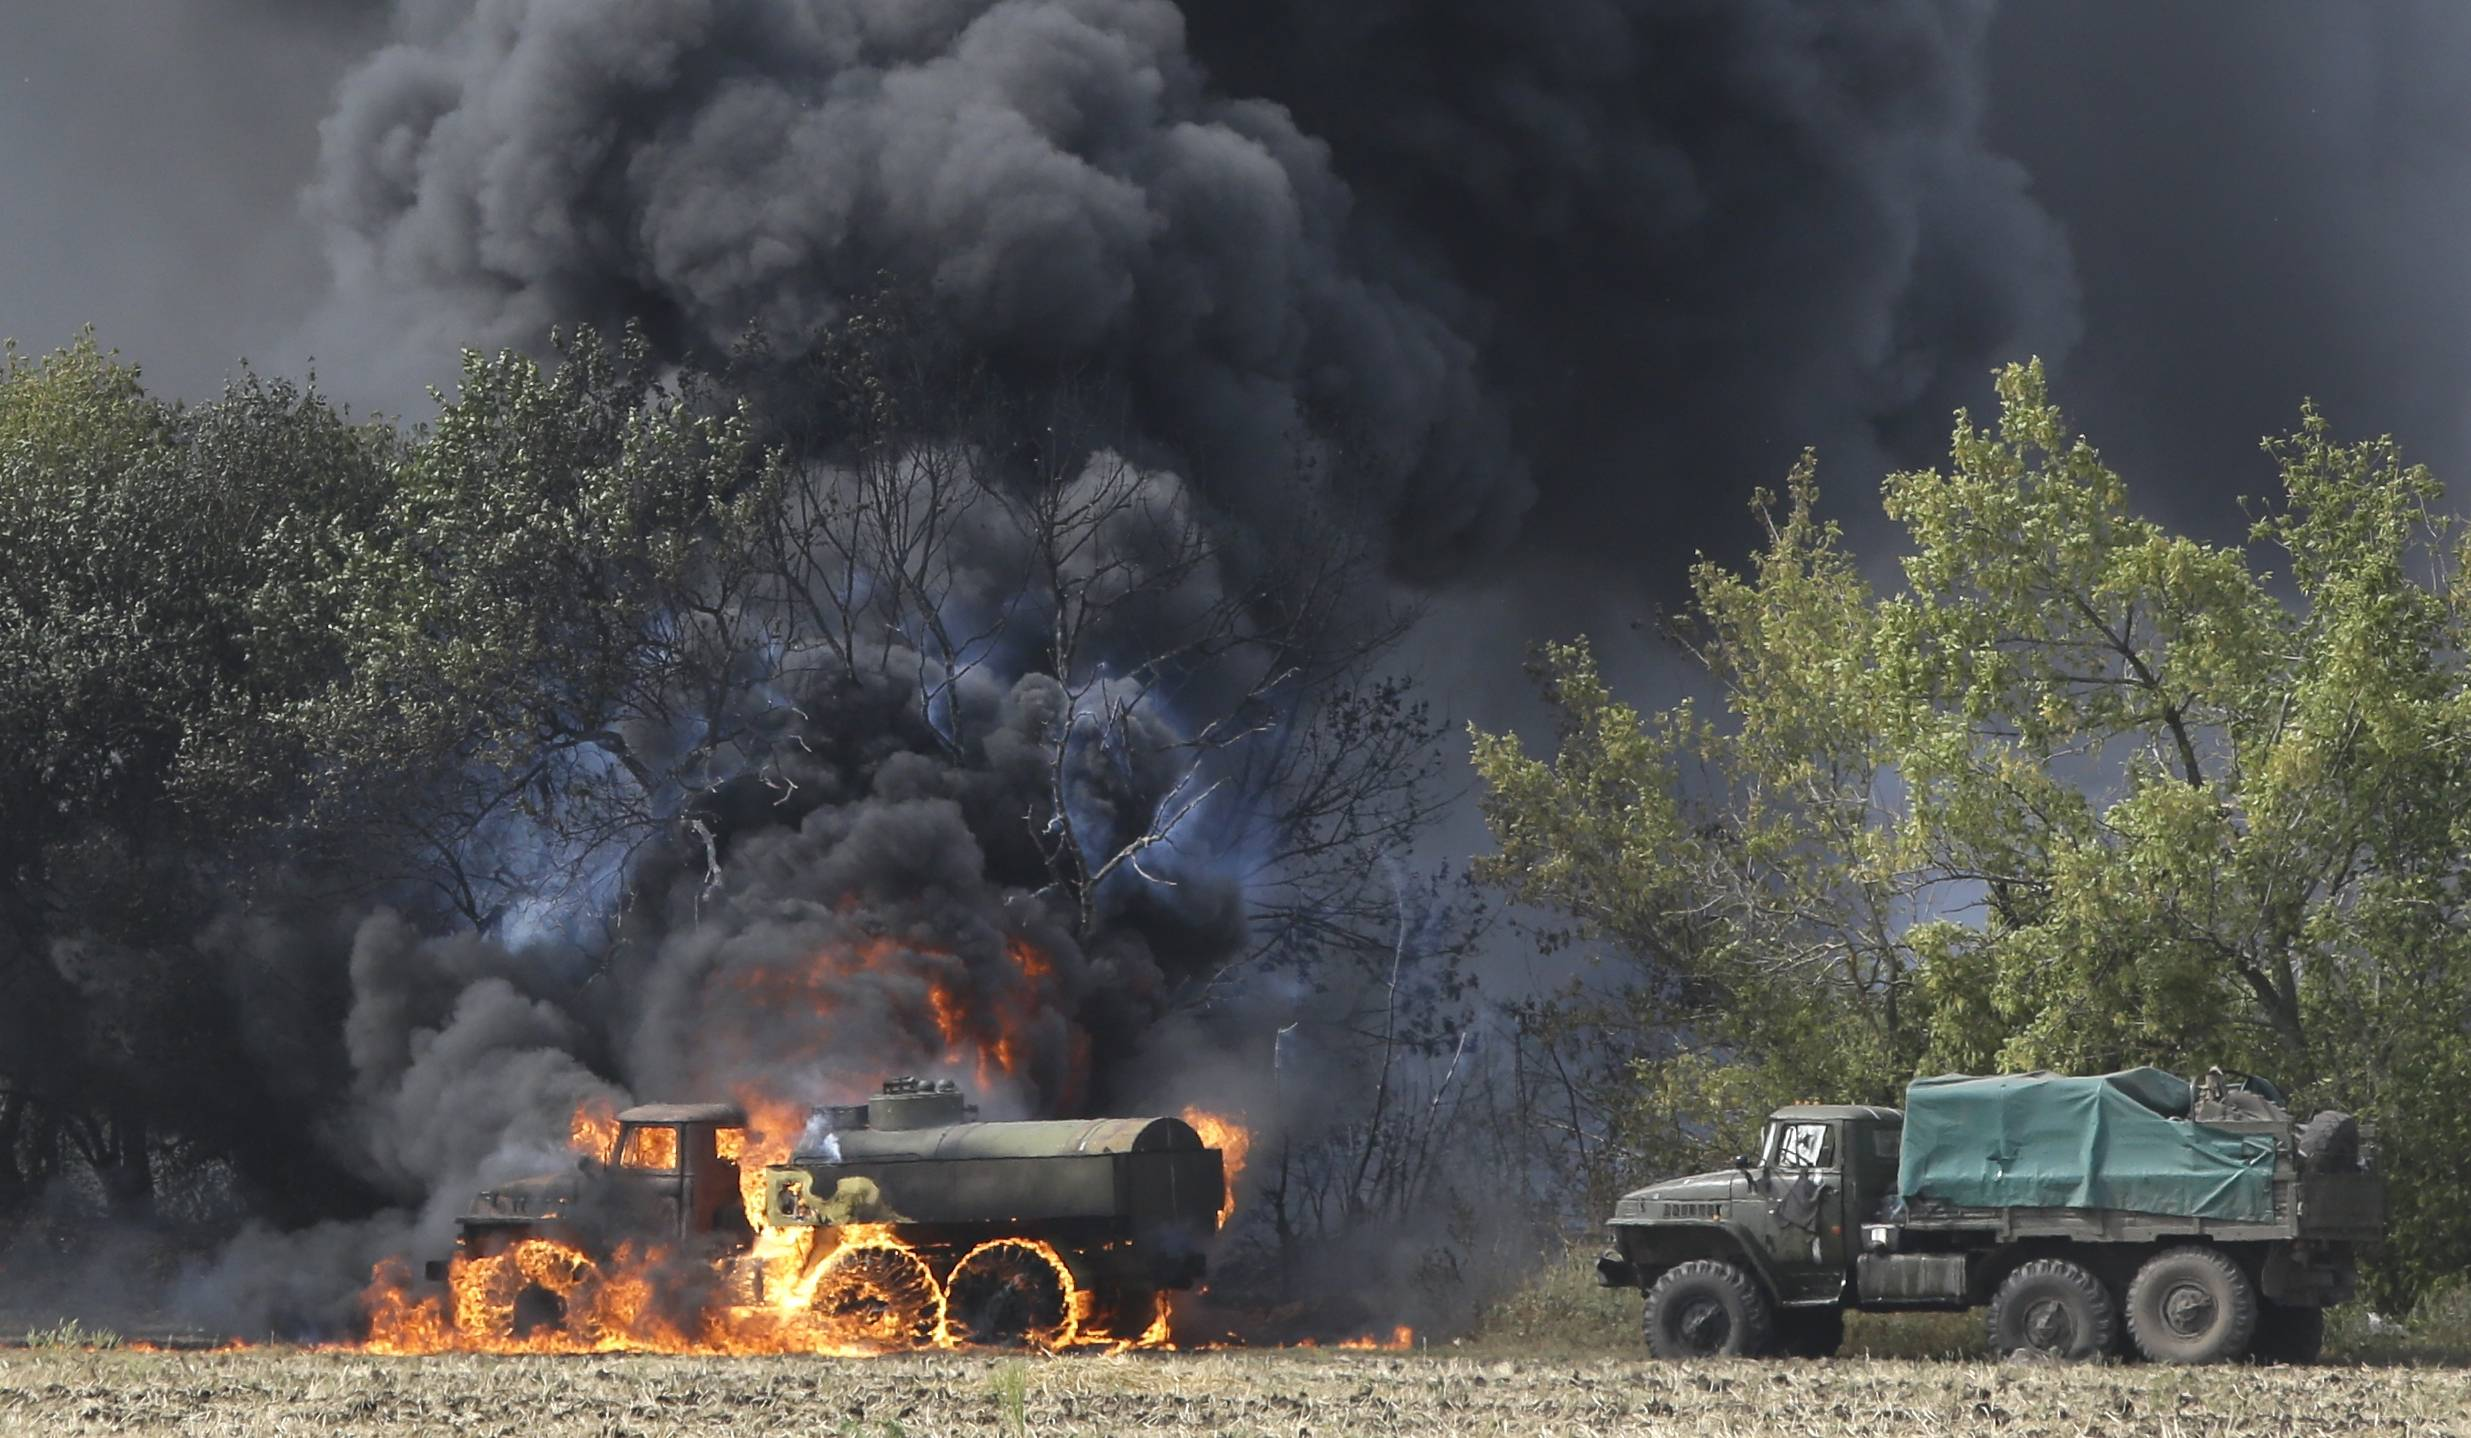 Unmarked Military vehicles burn near the village of Berezove, eastern Ukraine, Thursday, after a clash between pro-government troops and Russian-backed separatist militia. Separatist rebels have made major strides in their offensive against Ukrainian government forces in recent days, drawing on what Ukraine and NATO says is ample support from the Russian military.